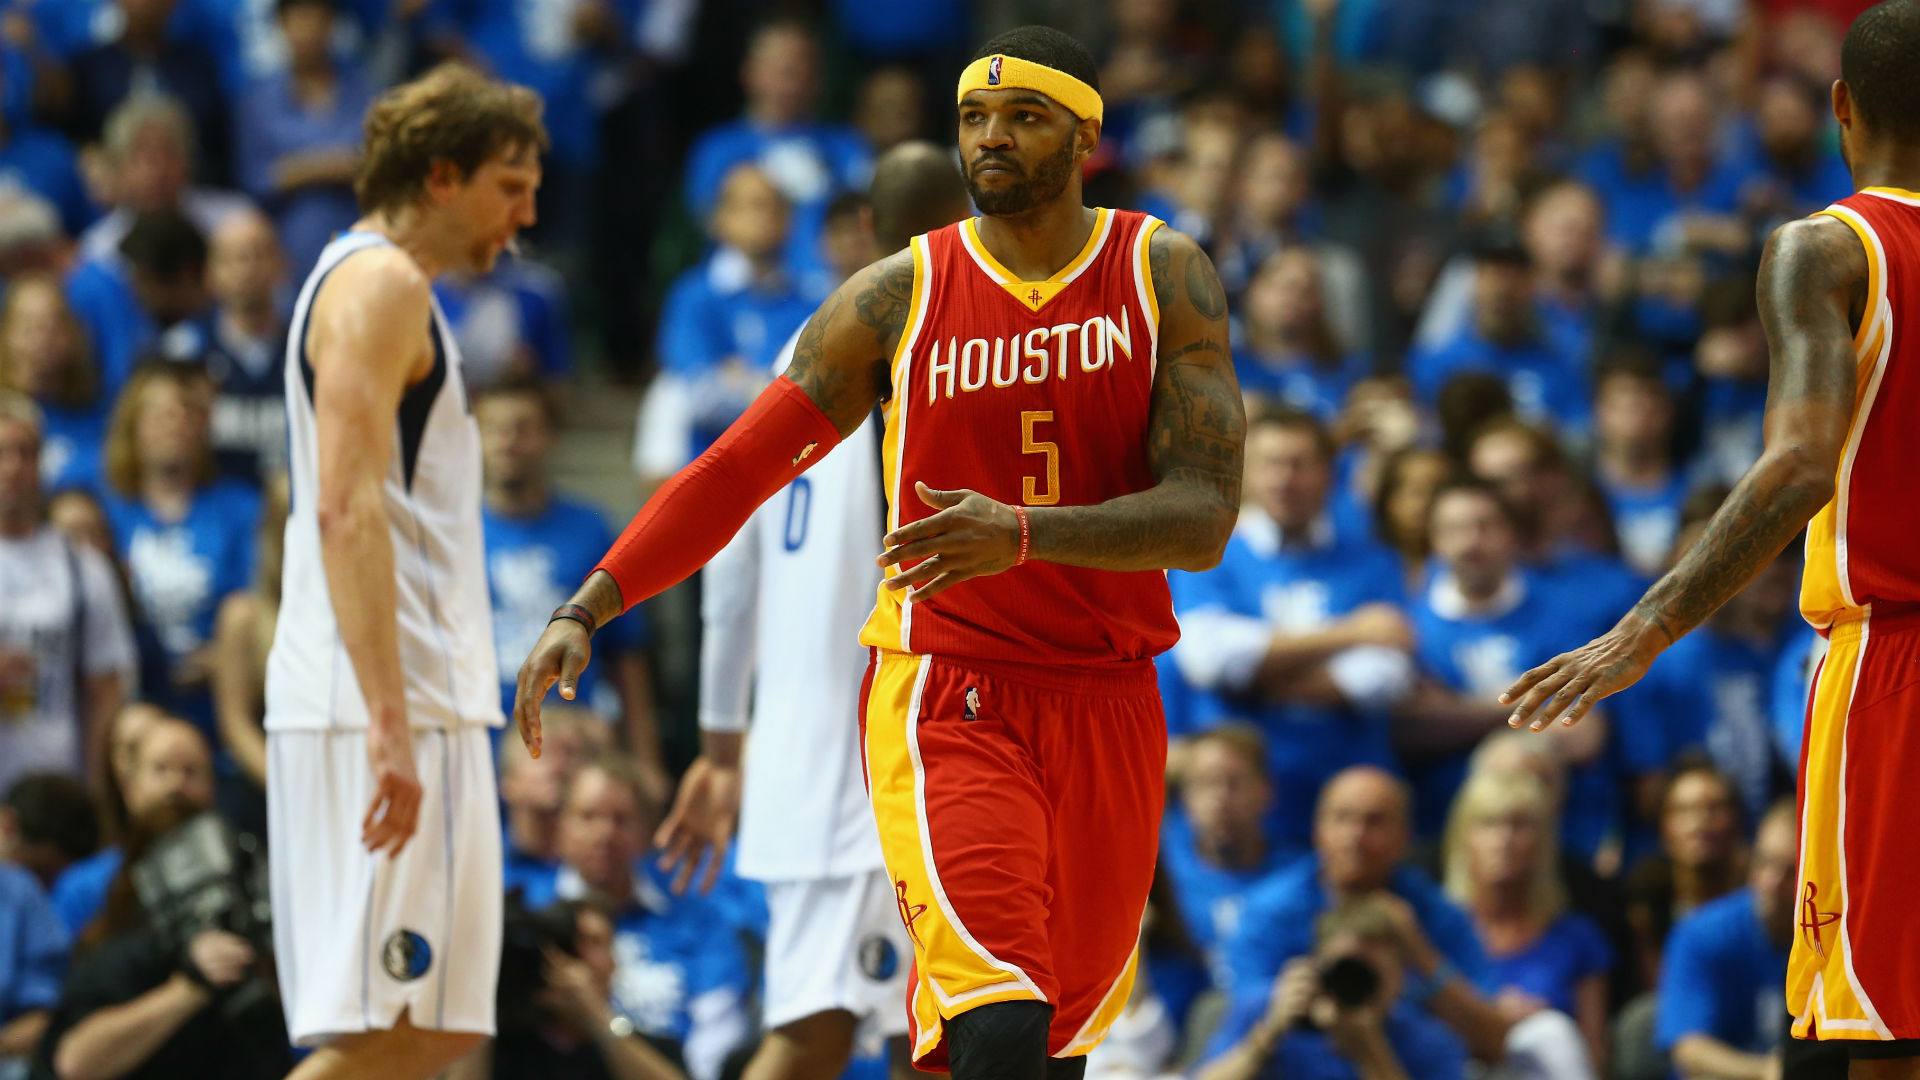 Josh Smith tries to clear the air on controversial quote